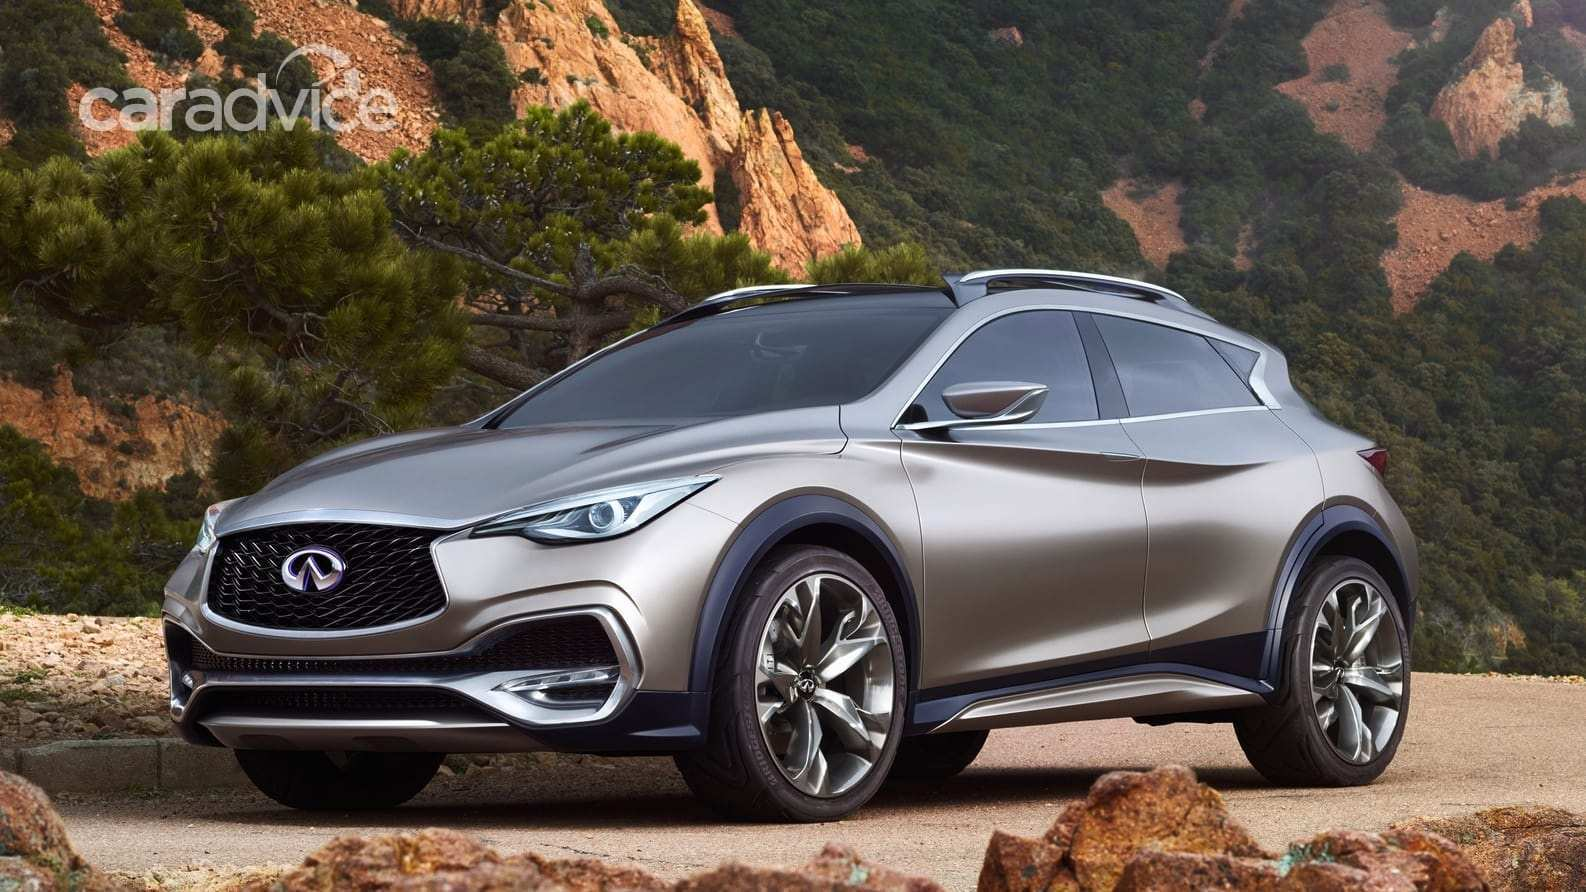 75 All New 2020 Infiniti Q30 Images